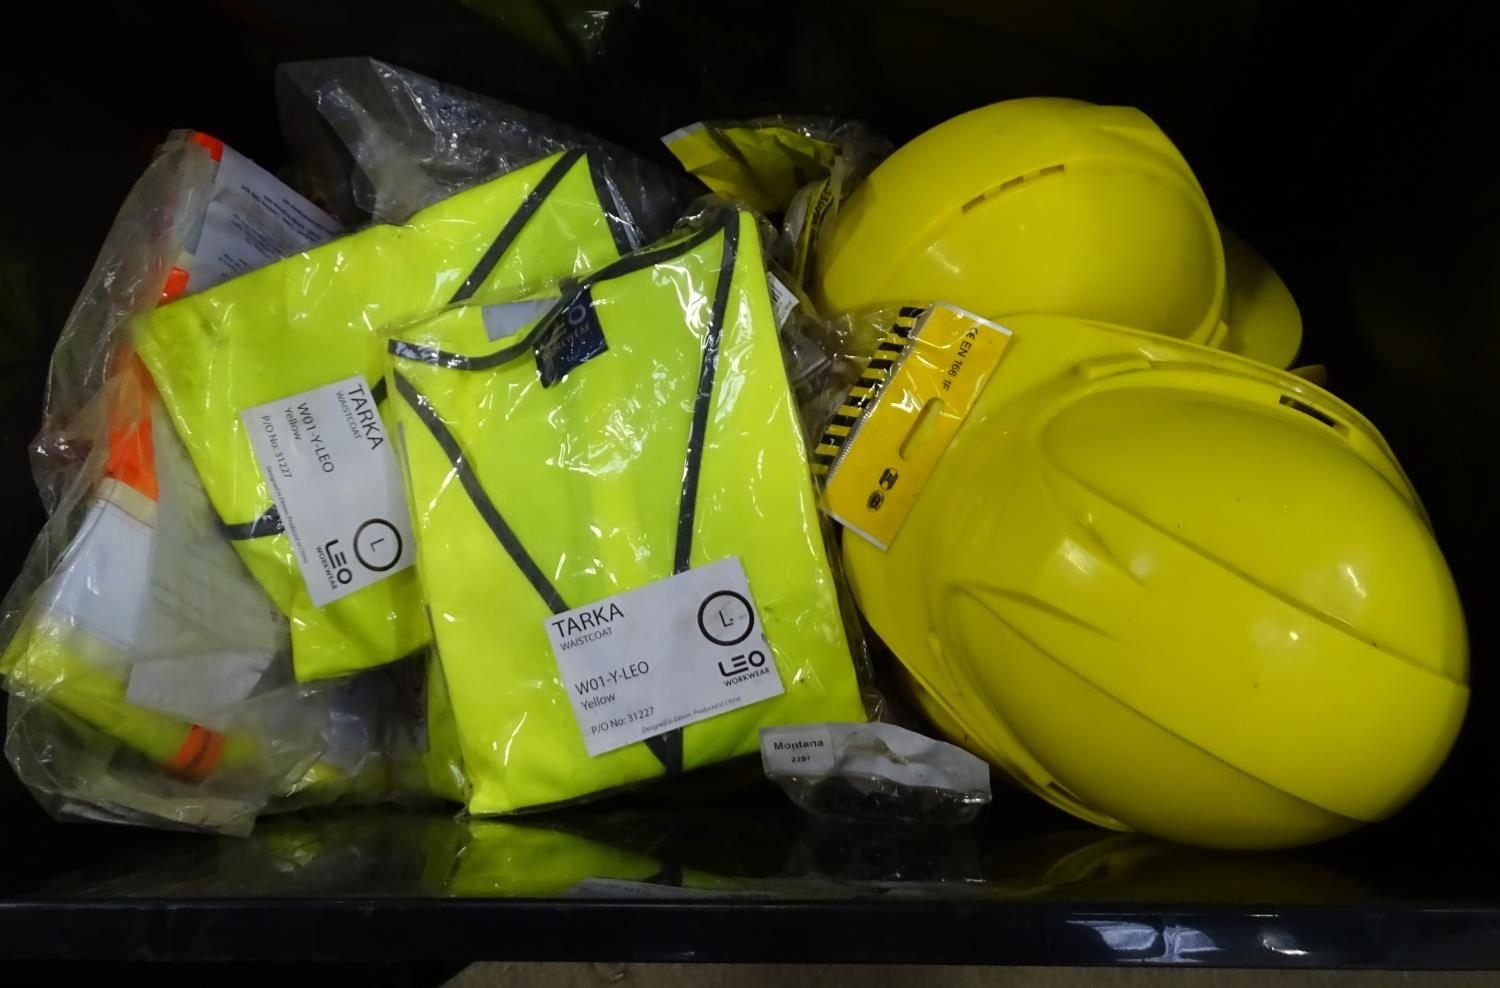 A quantity of health and safety equipment to include hard hats, safety glasses, hi vis vests etc. - Image 2 of 6